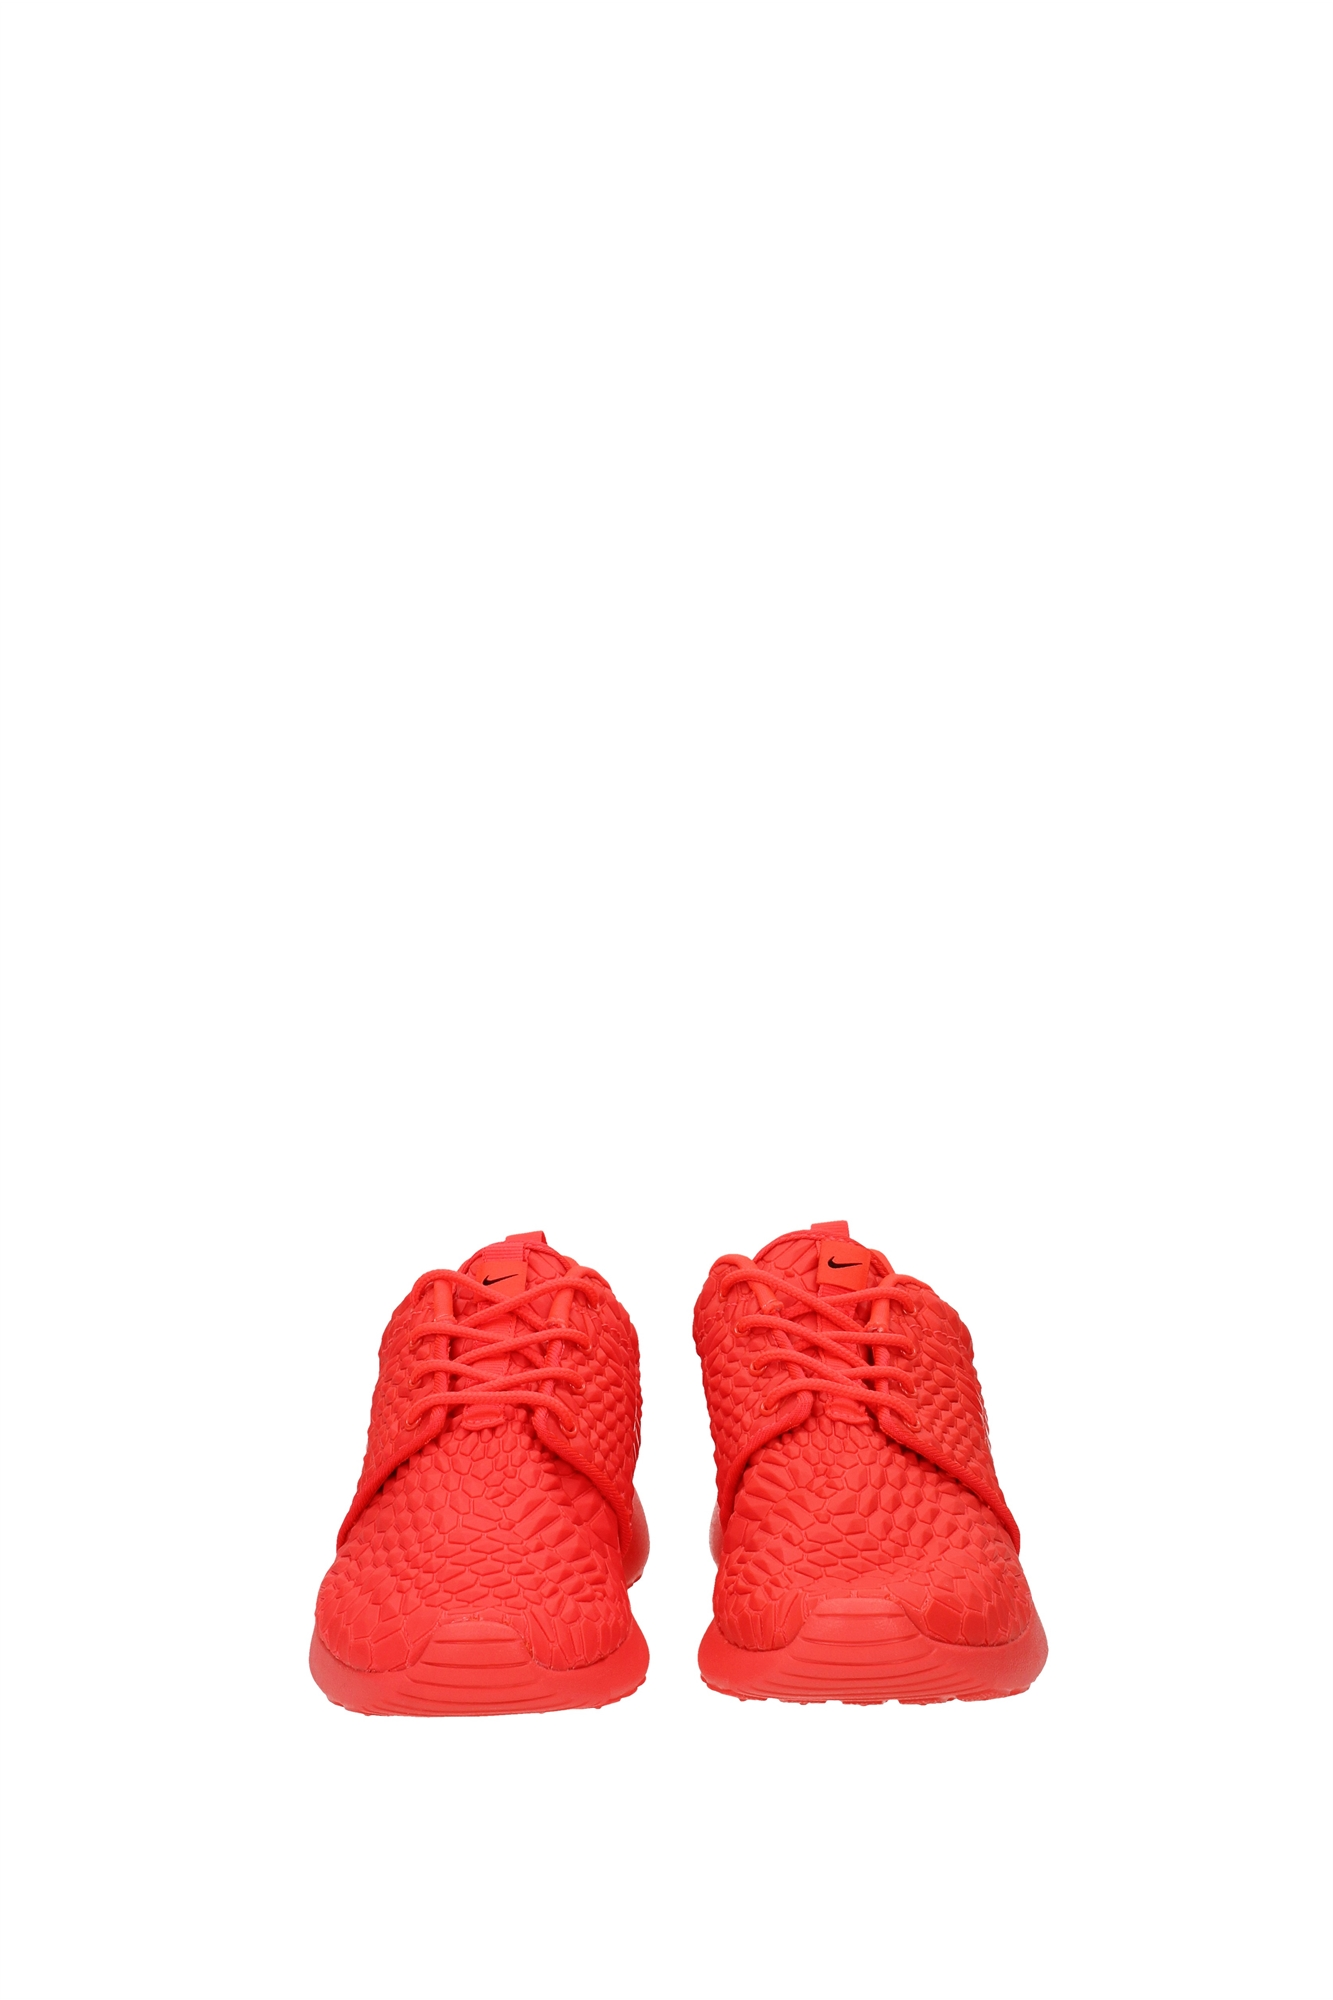 Nike roshe one dmb red womens - Our Top Pick